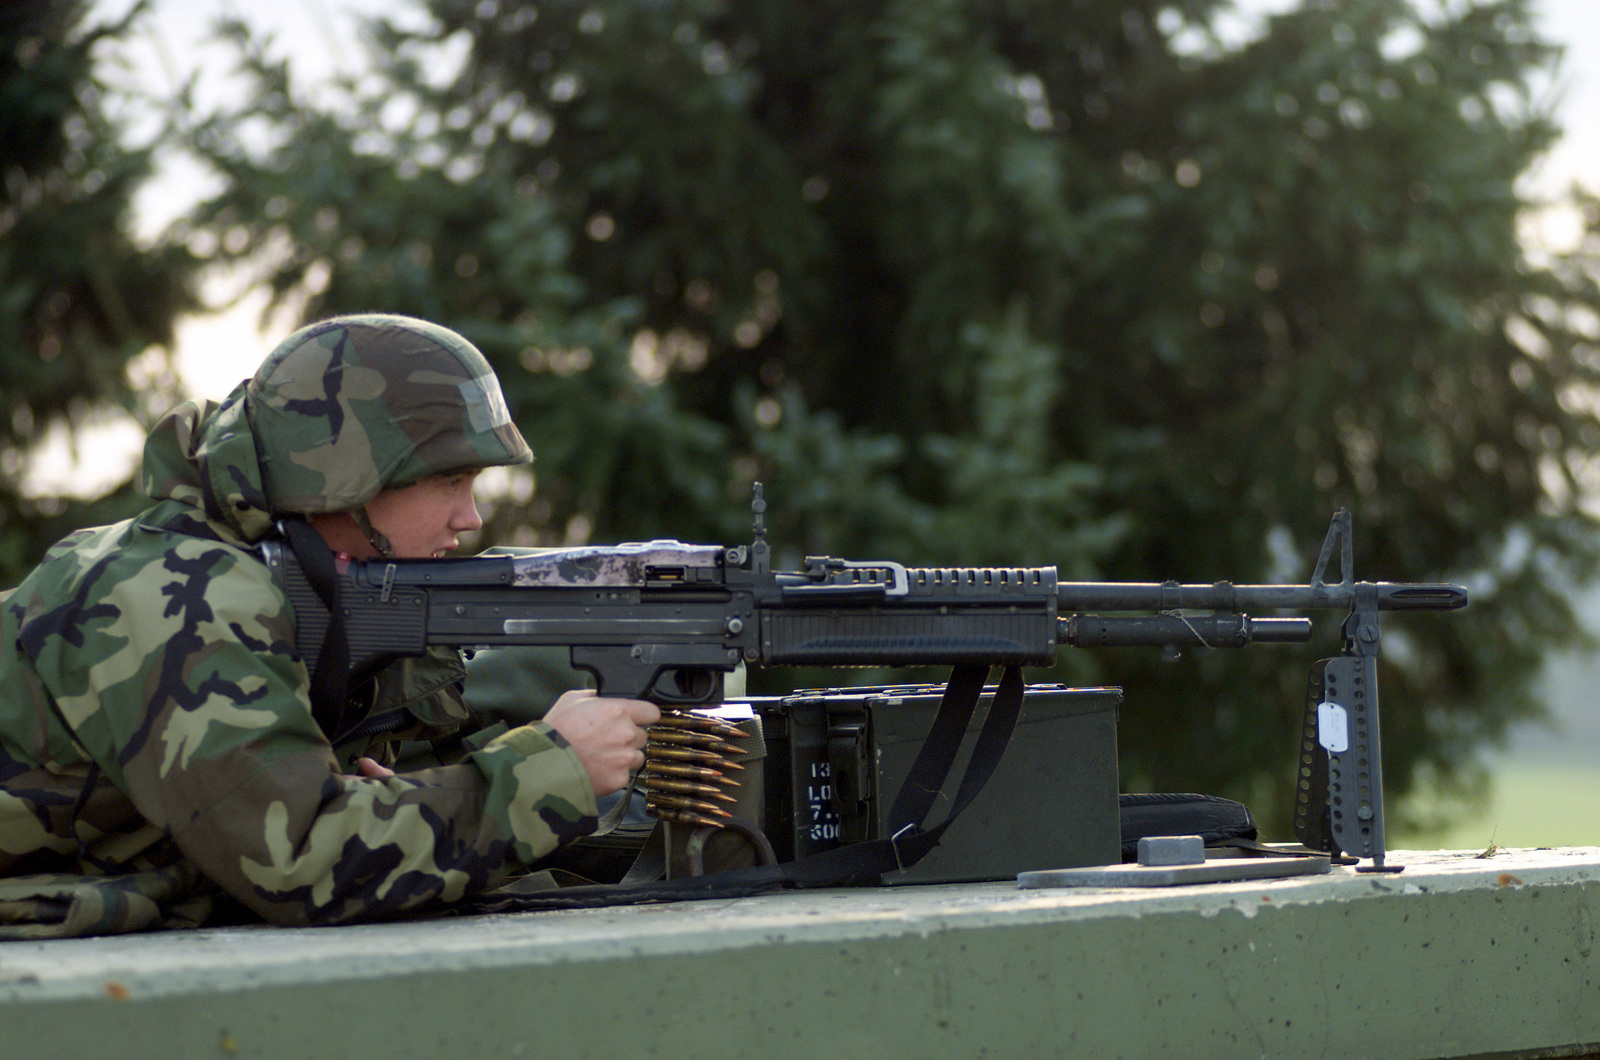 At his post, US Air Force (USAF) AIRMAN First Class (A1C) Nicholas Burtch, mans an M60 7.62MM Machine Gun on top of a pill box bunker, during the 52nd Fighter Wing's (FW) Operational Readiness Inspection (ORI), at Spangdahlem Air Base (AB), Germany